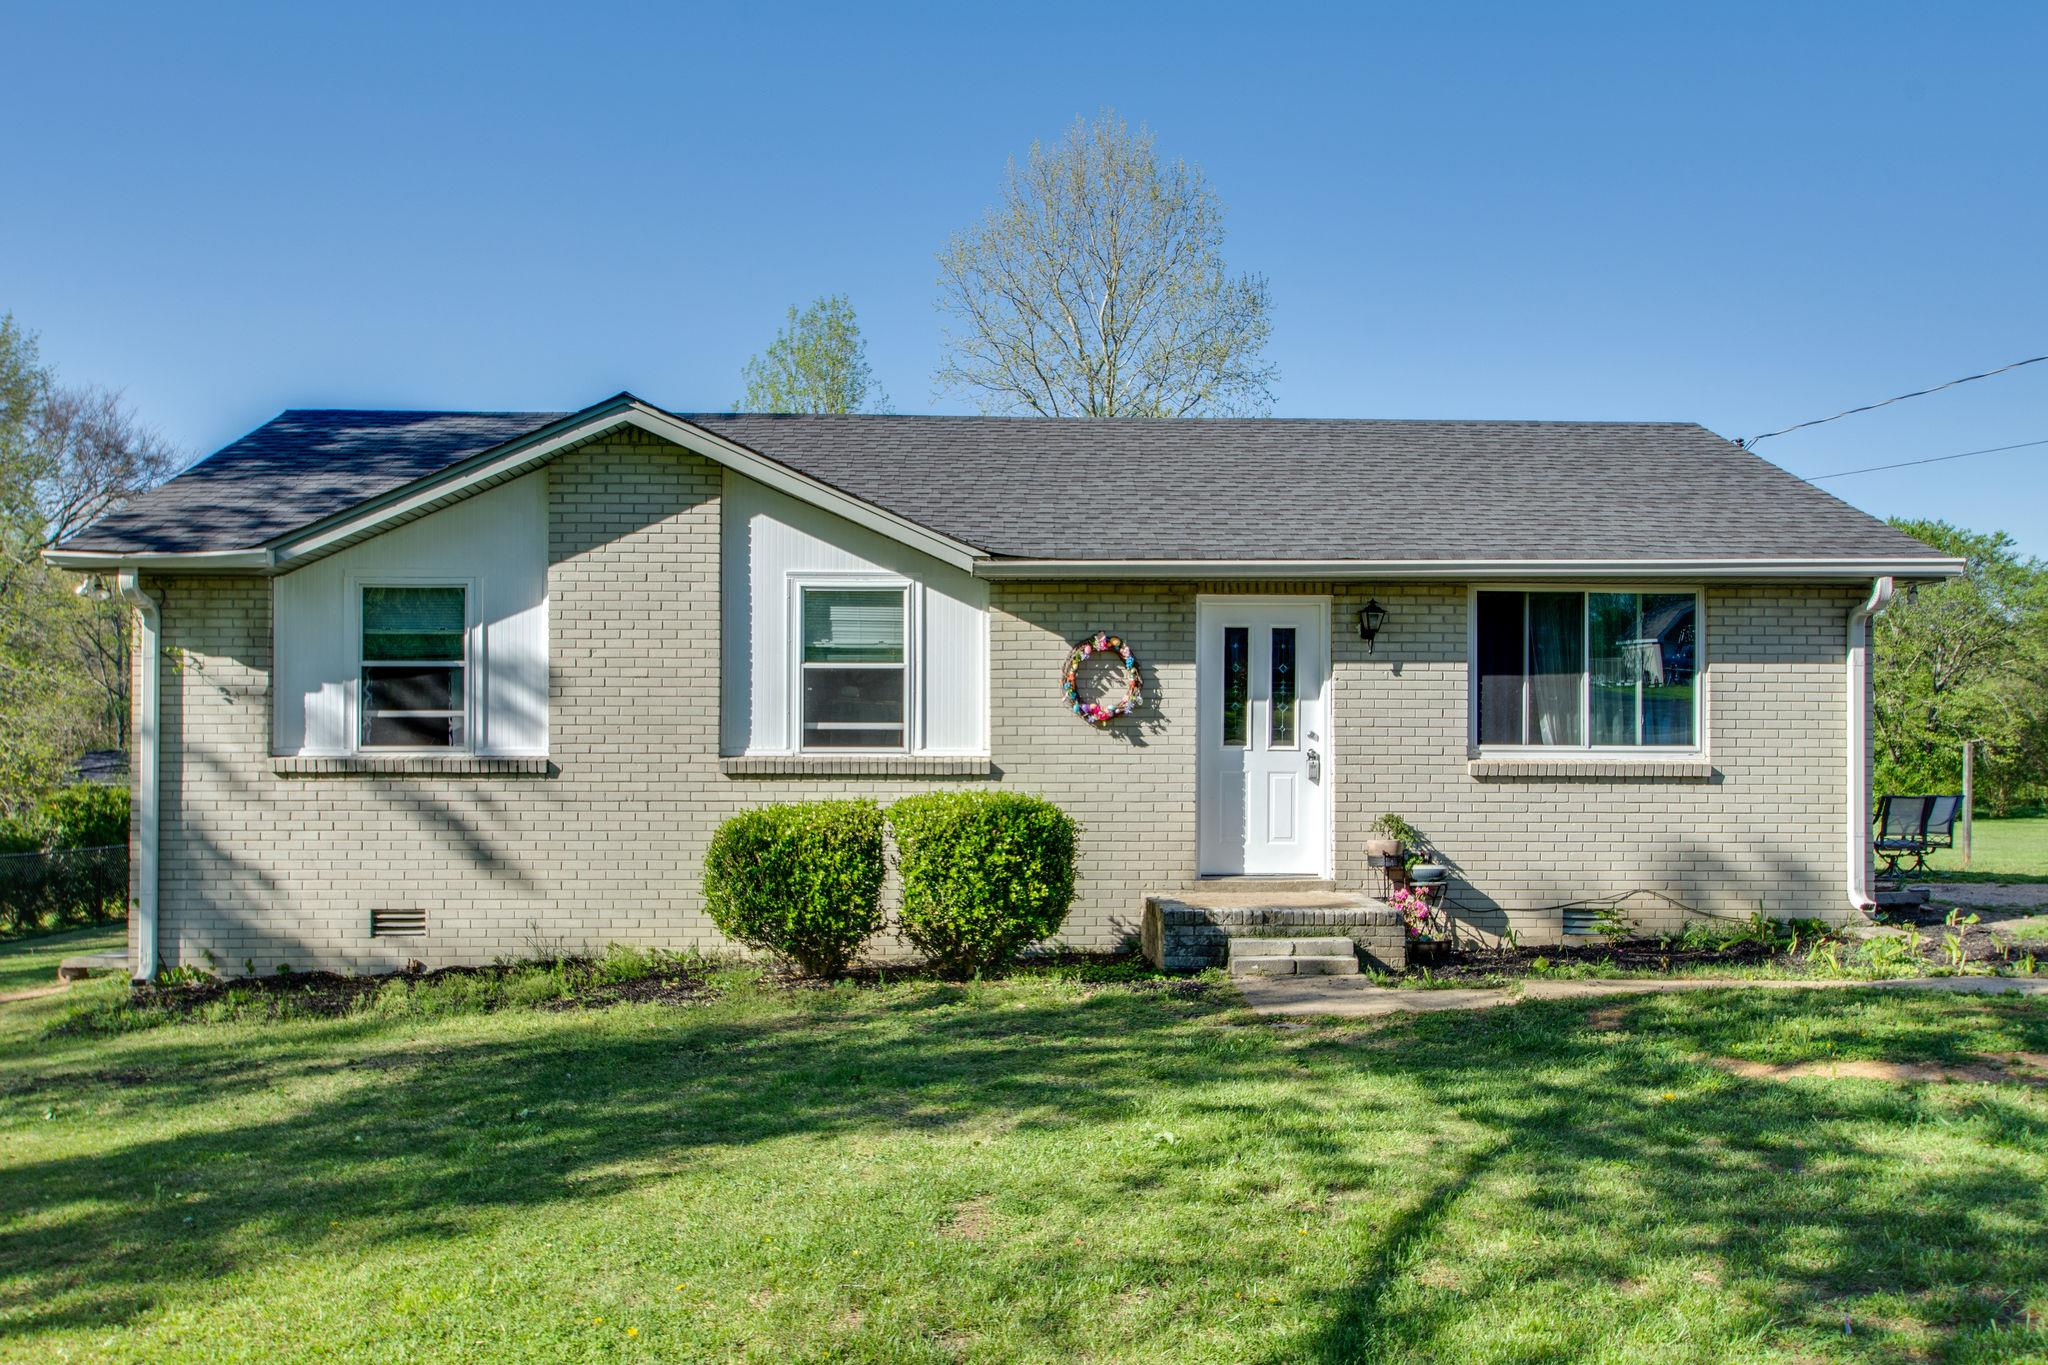 7113 Fairlawn Dr, Fairview in Williamson County County, TN 37062 Home for Sale